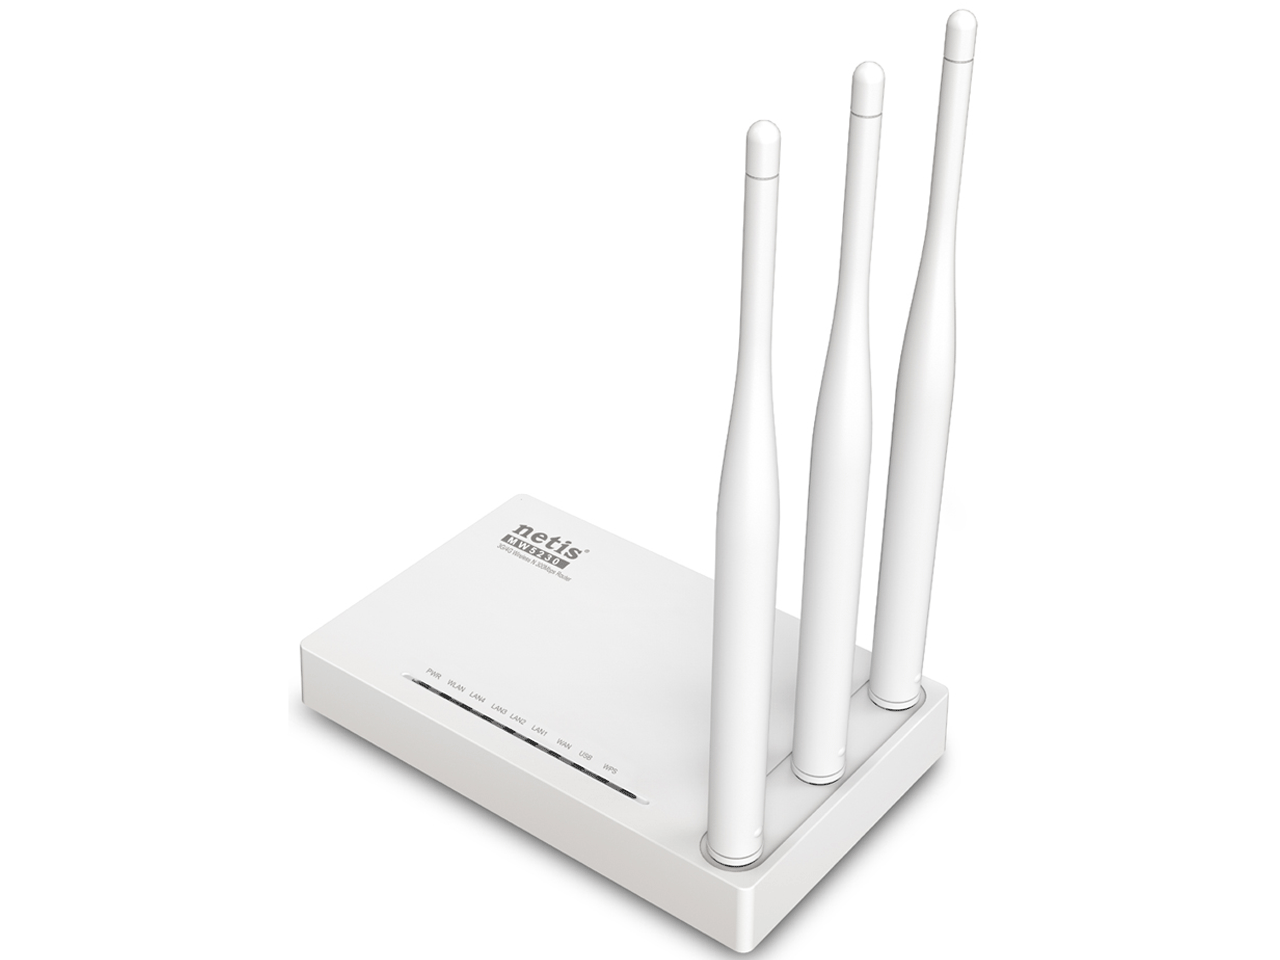 NETİS MW5230 300MBPS WİRELESS N 3G/4G ROUTER, 3*5dBi EXTERNAL FİXED ANTENNAS, USB2.0